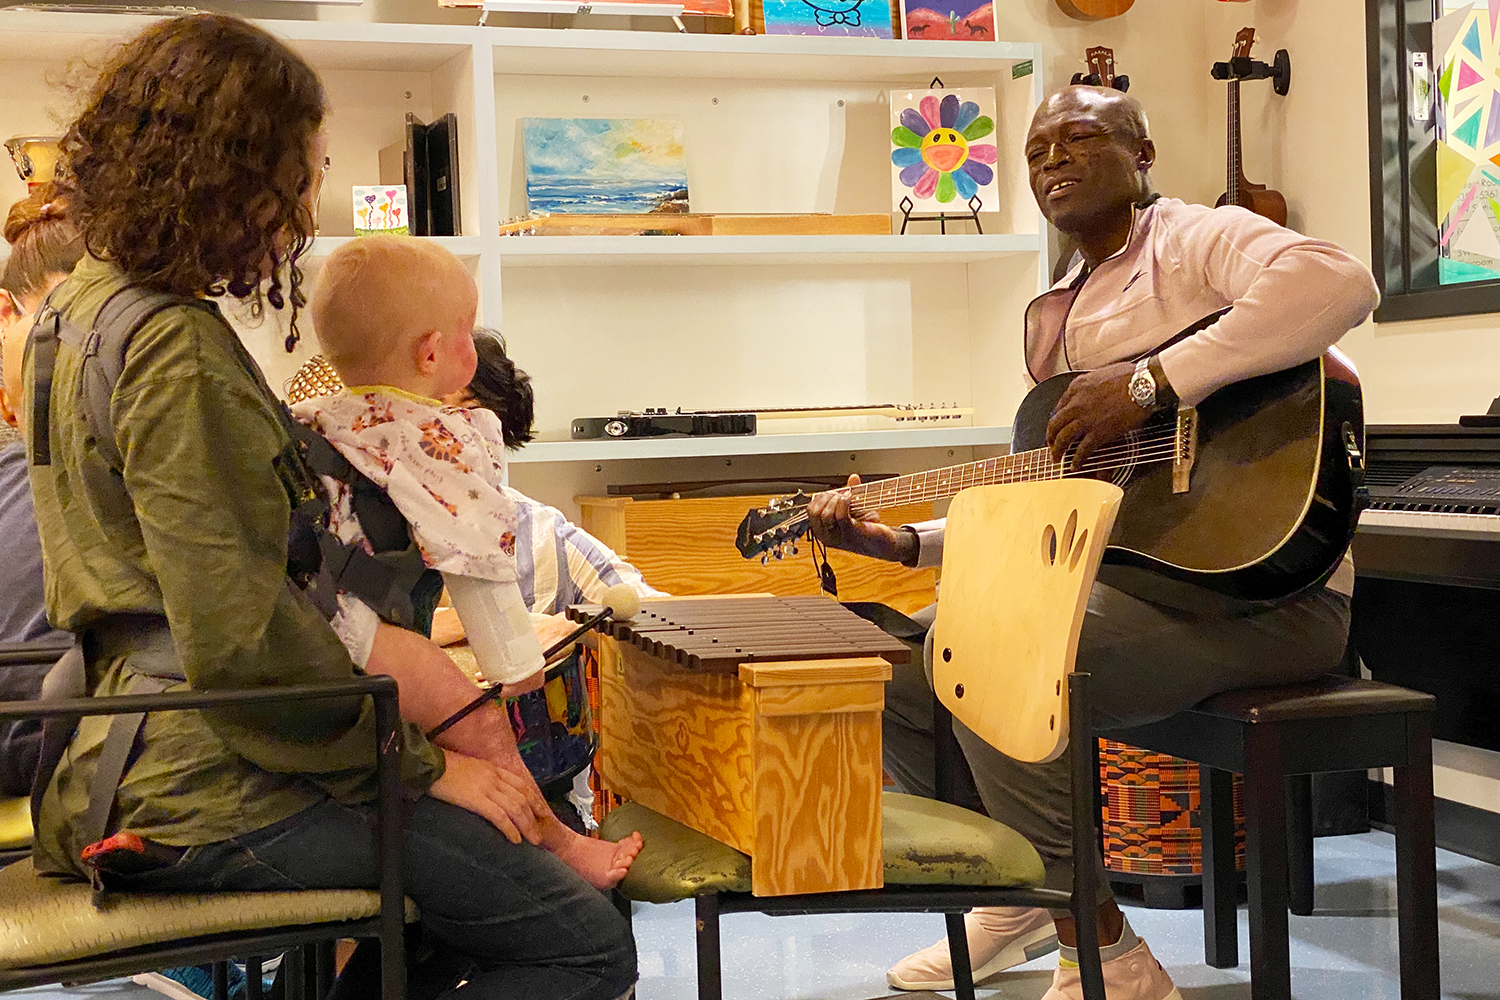 On March 3rd, four time Grammy Award-winning singer-songwriter and musician, Seal, entertained child patients and their families with a performance at Children's Hospital Los Angeles as part of their month-long Make March Matter Campaign.